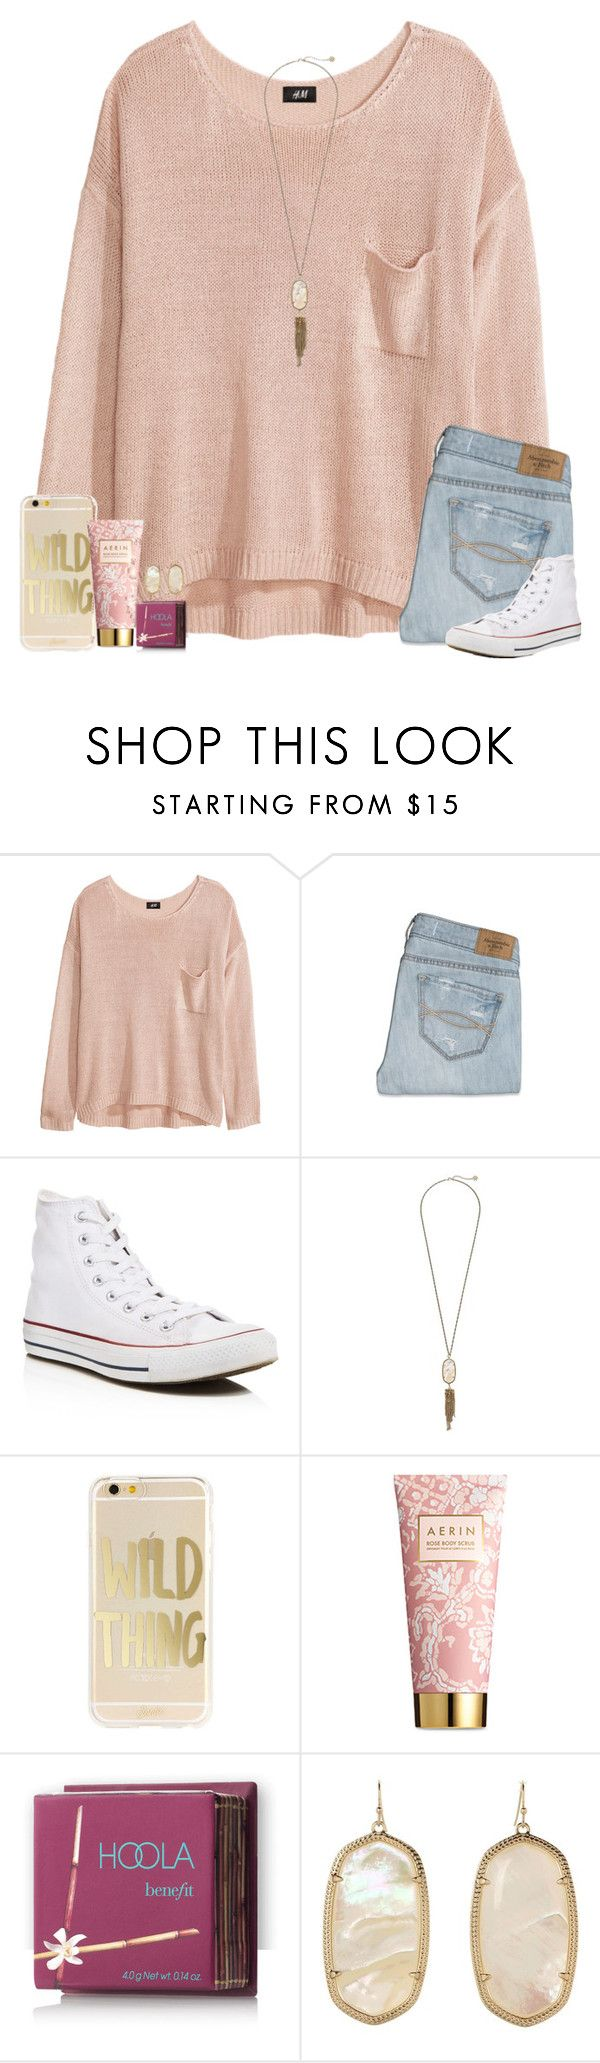 """wild thing"" by ashtongg117 ❤ liked on Polyvore featuring H&M, Abercrombie & Fitch, Converse, Kendra Scott, AERIN and Hoola"